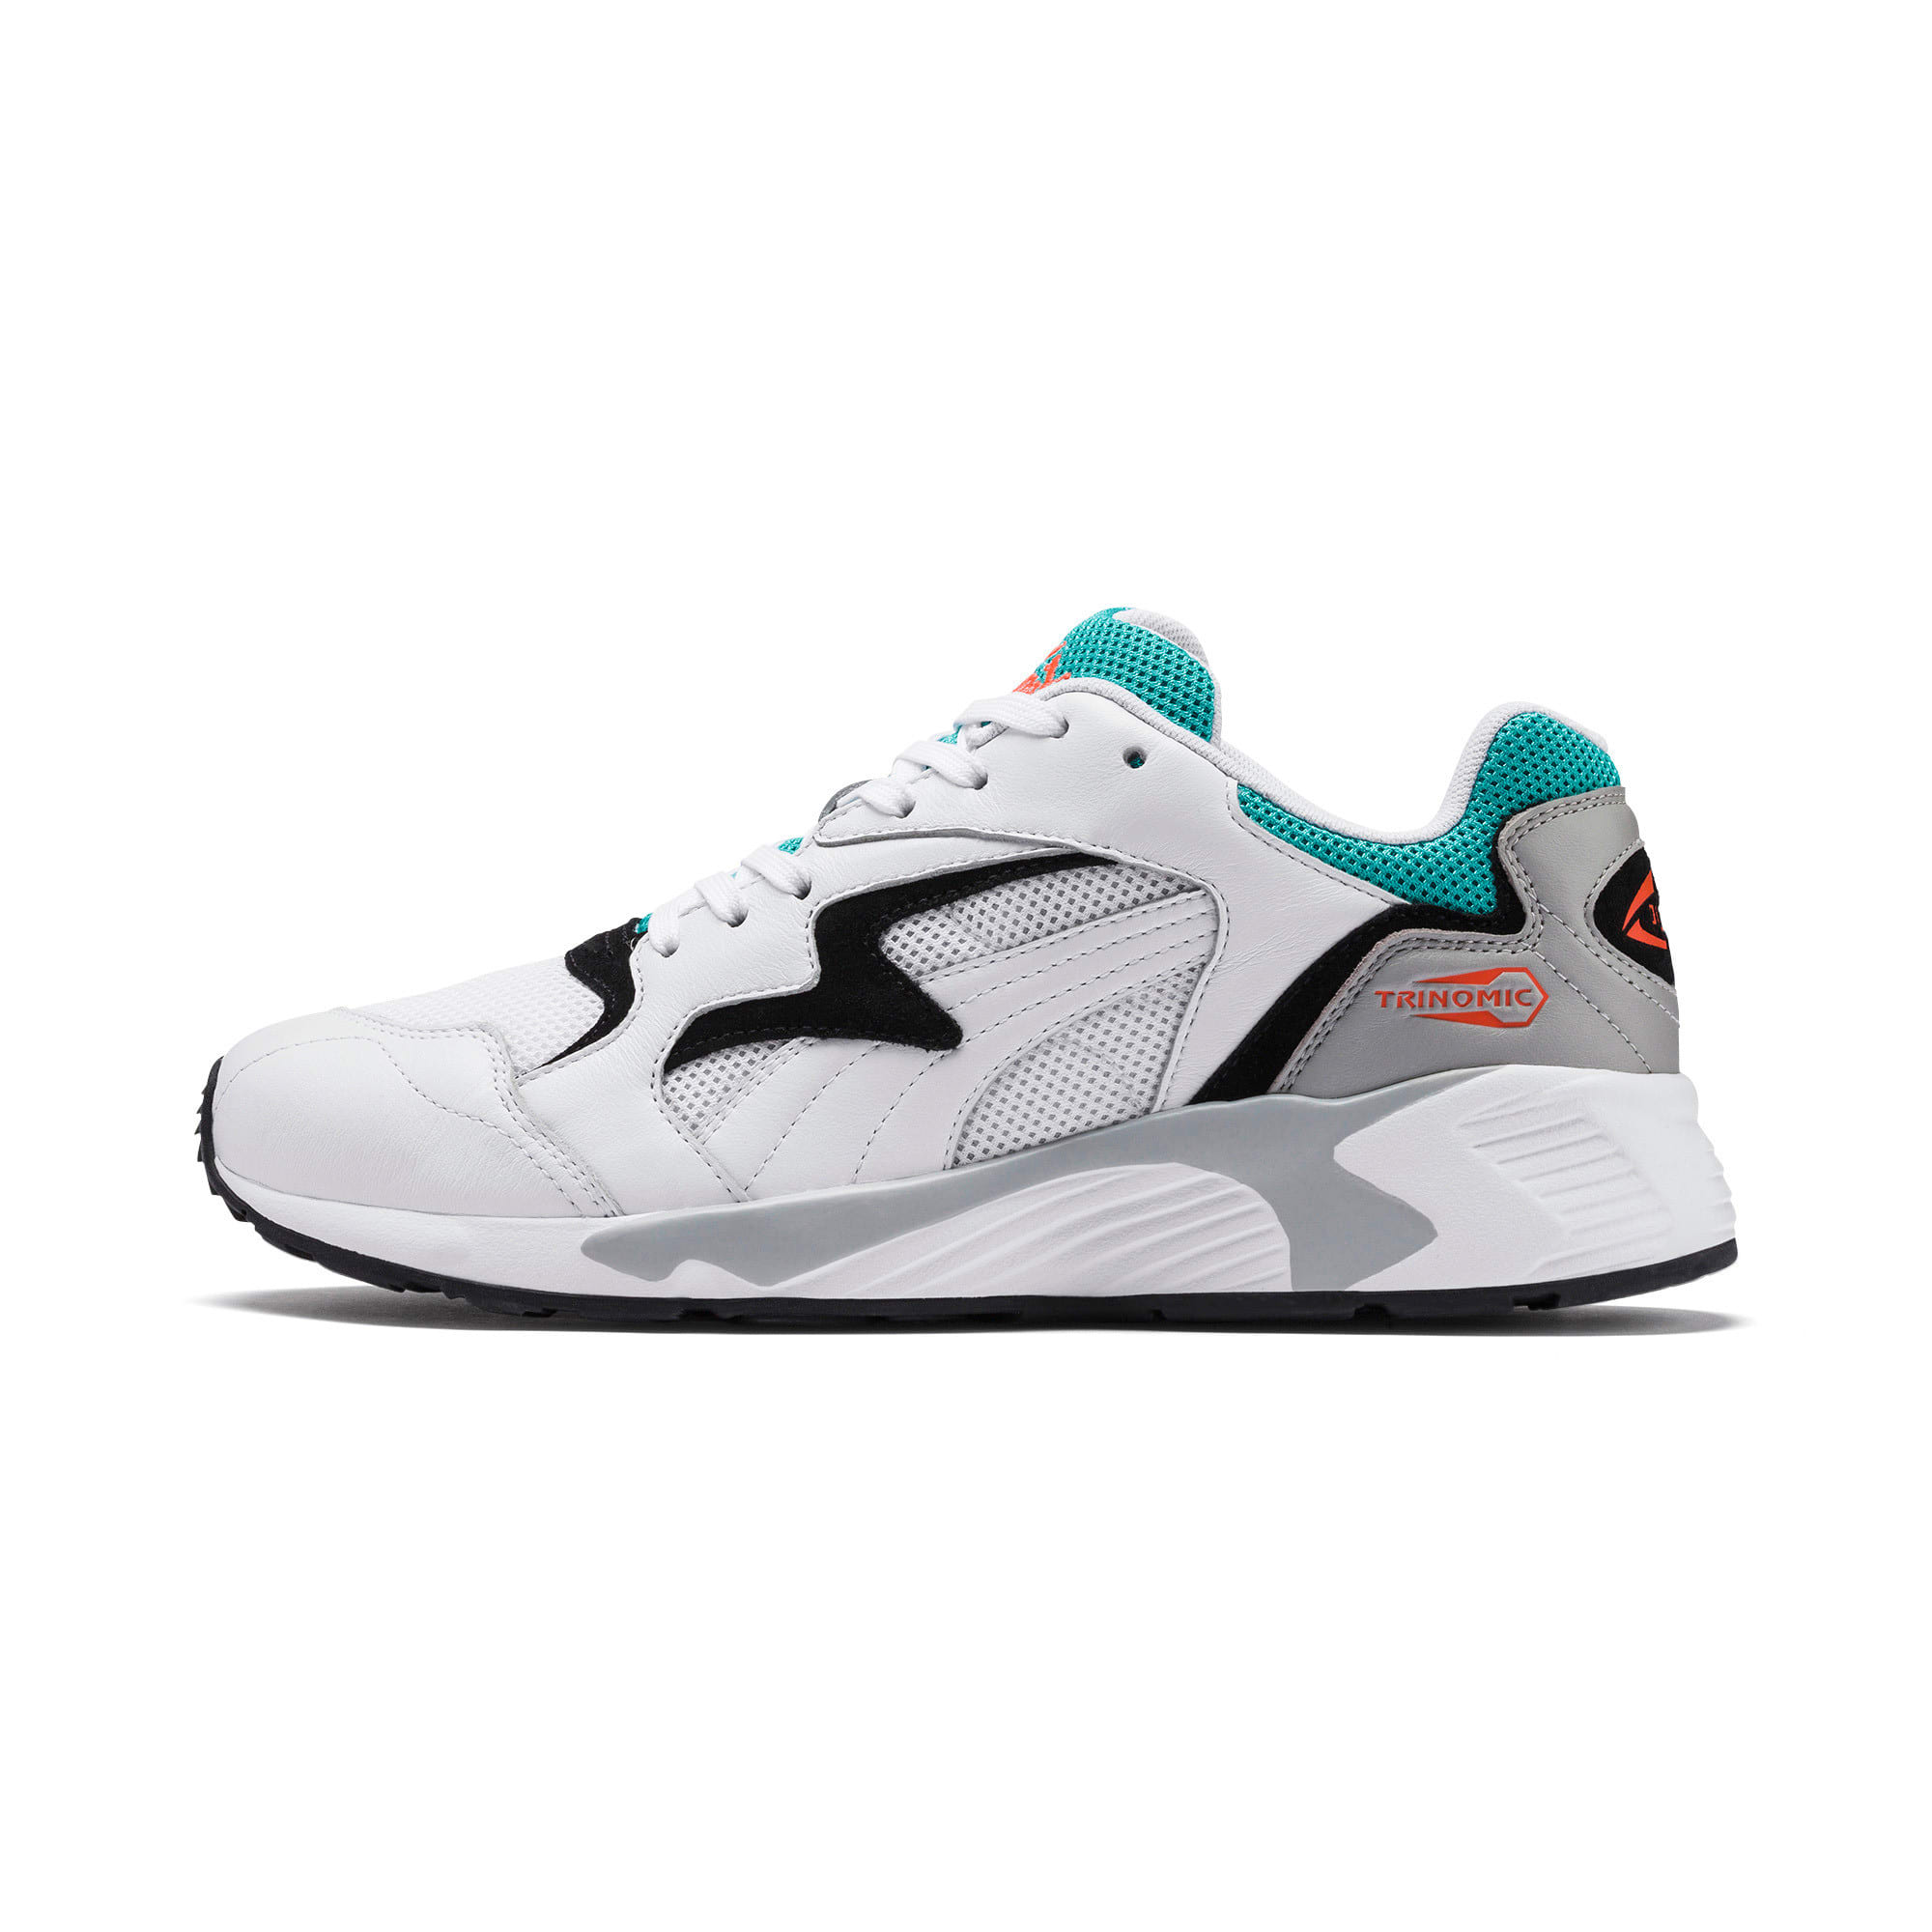 Thumbnail 1 of Prevail Classic Trainers, Puma White-Blue Turquoise, medium